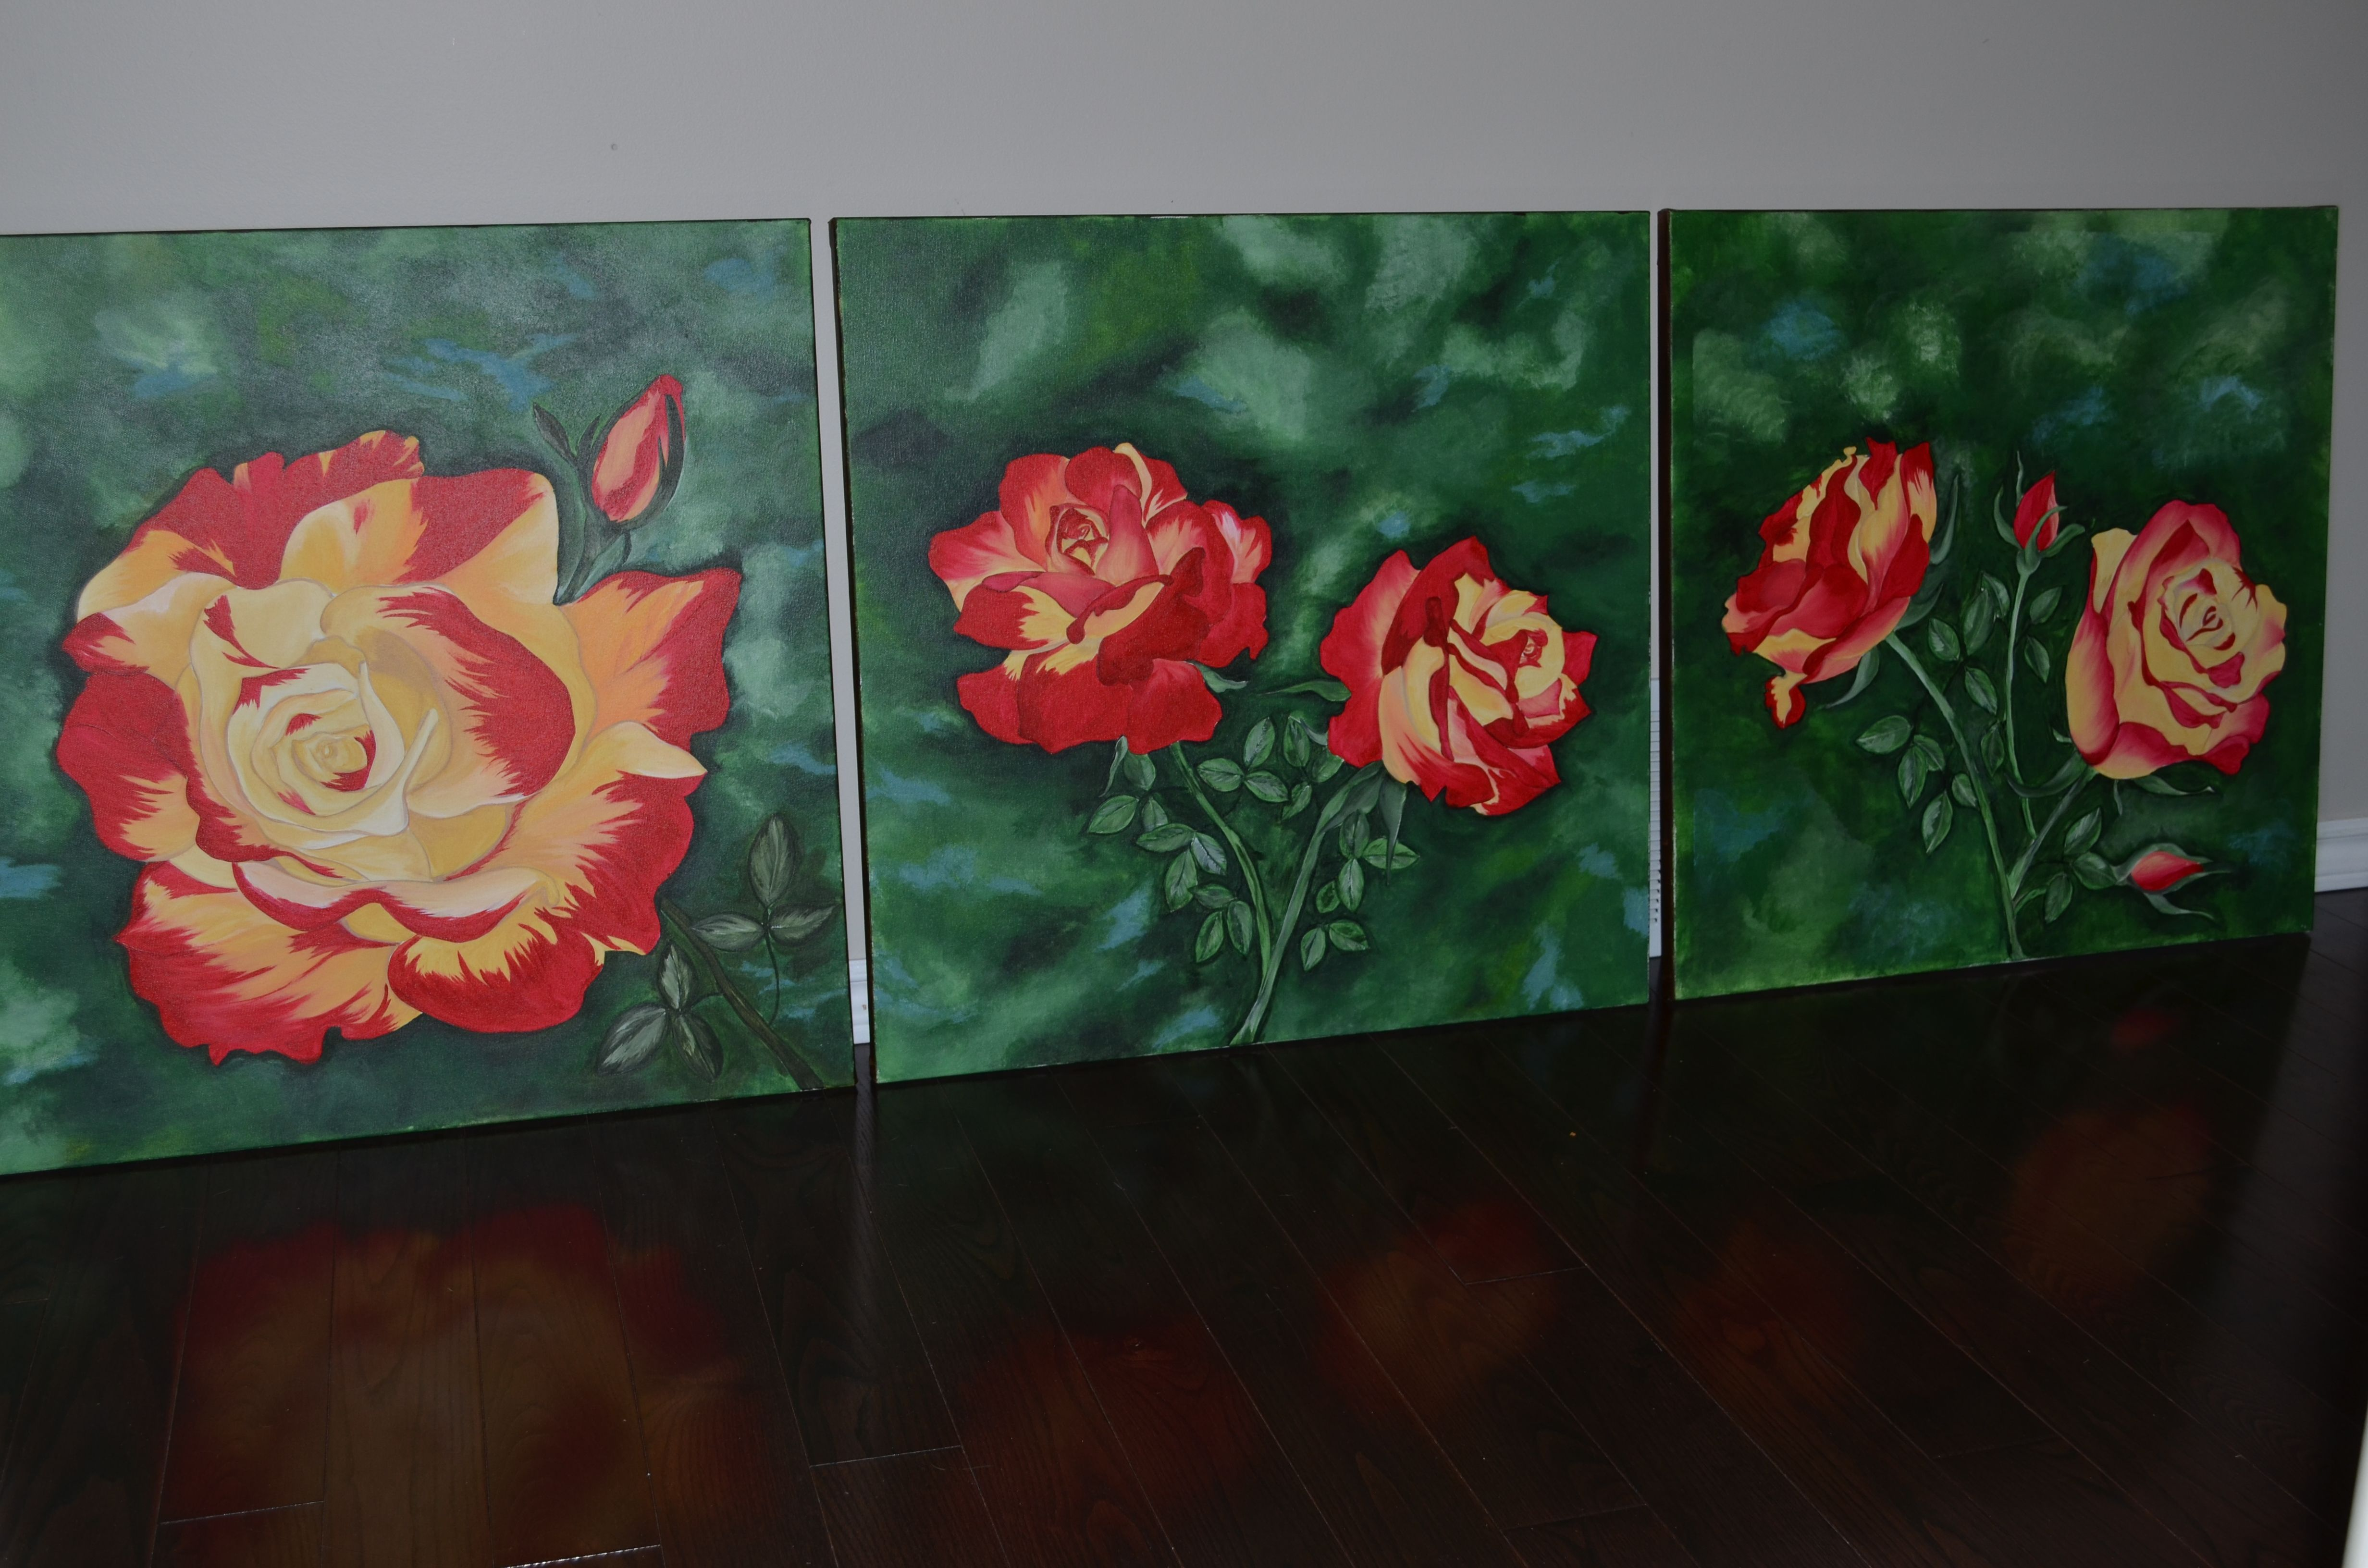 Custom rose triptych. I created this one so my client could split them up, arrange them horizontal or vertically.